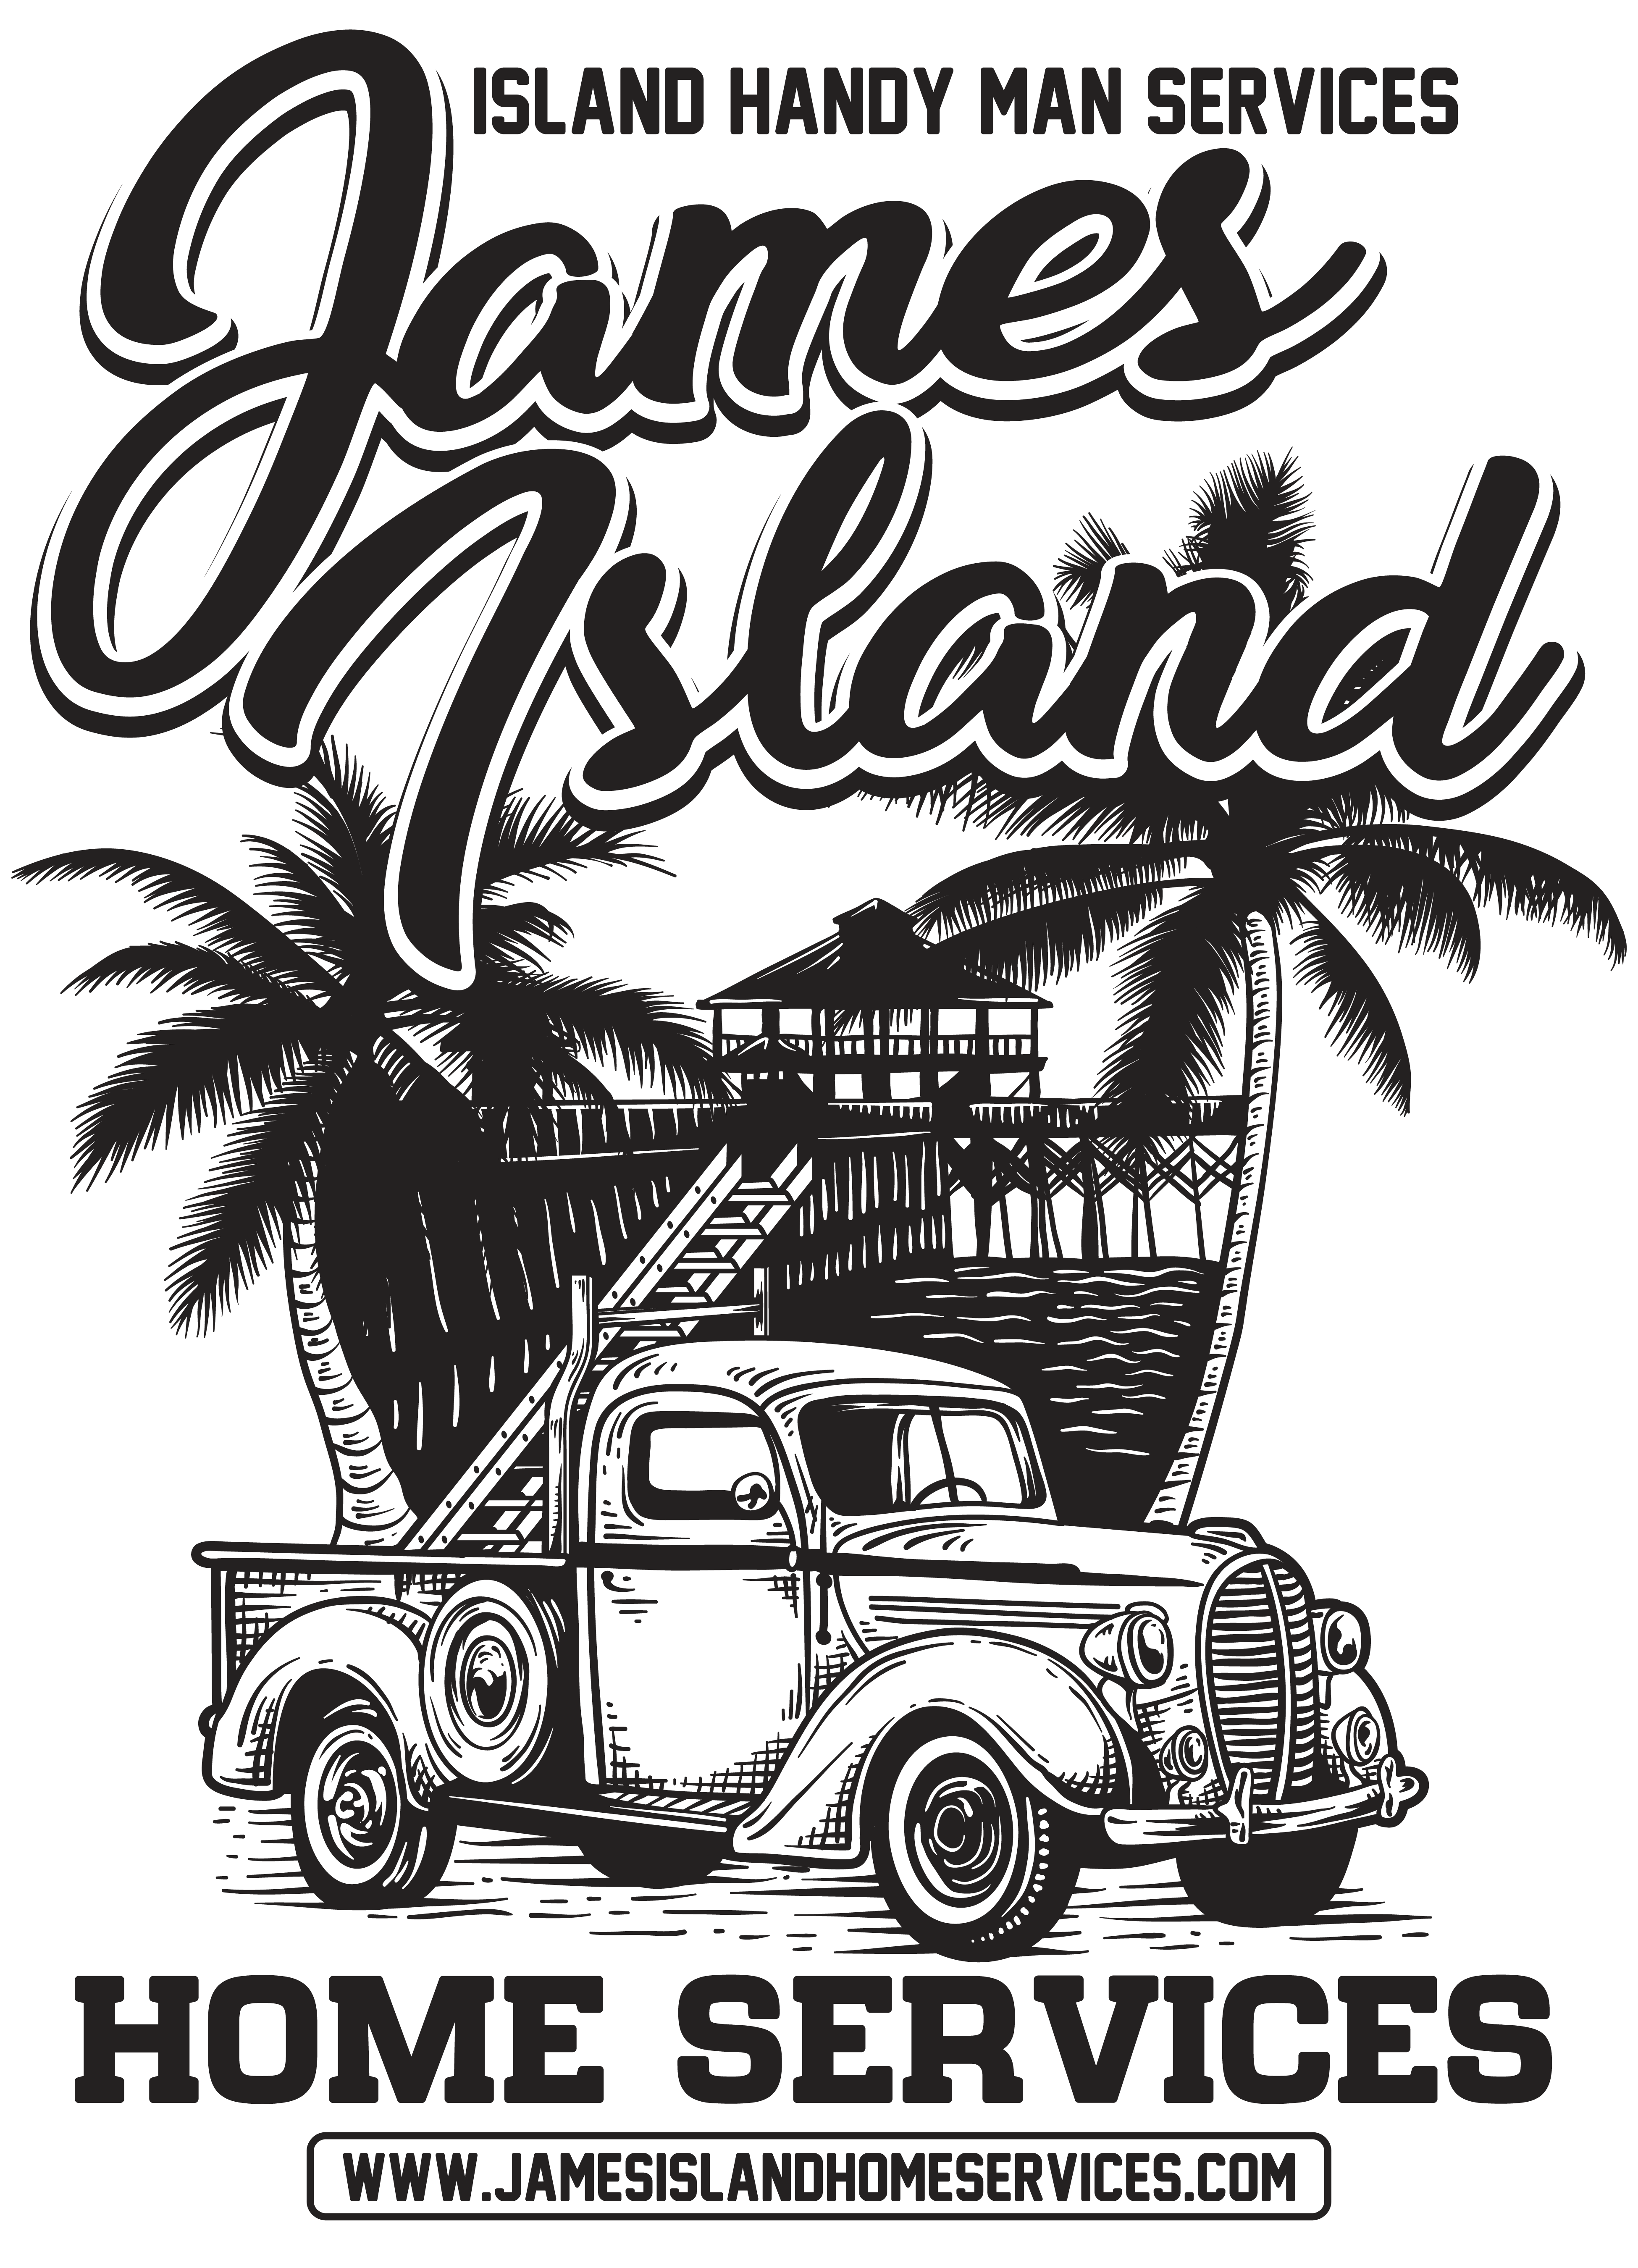 Retro Surf style for island handy man business